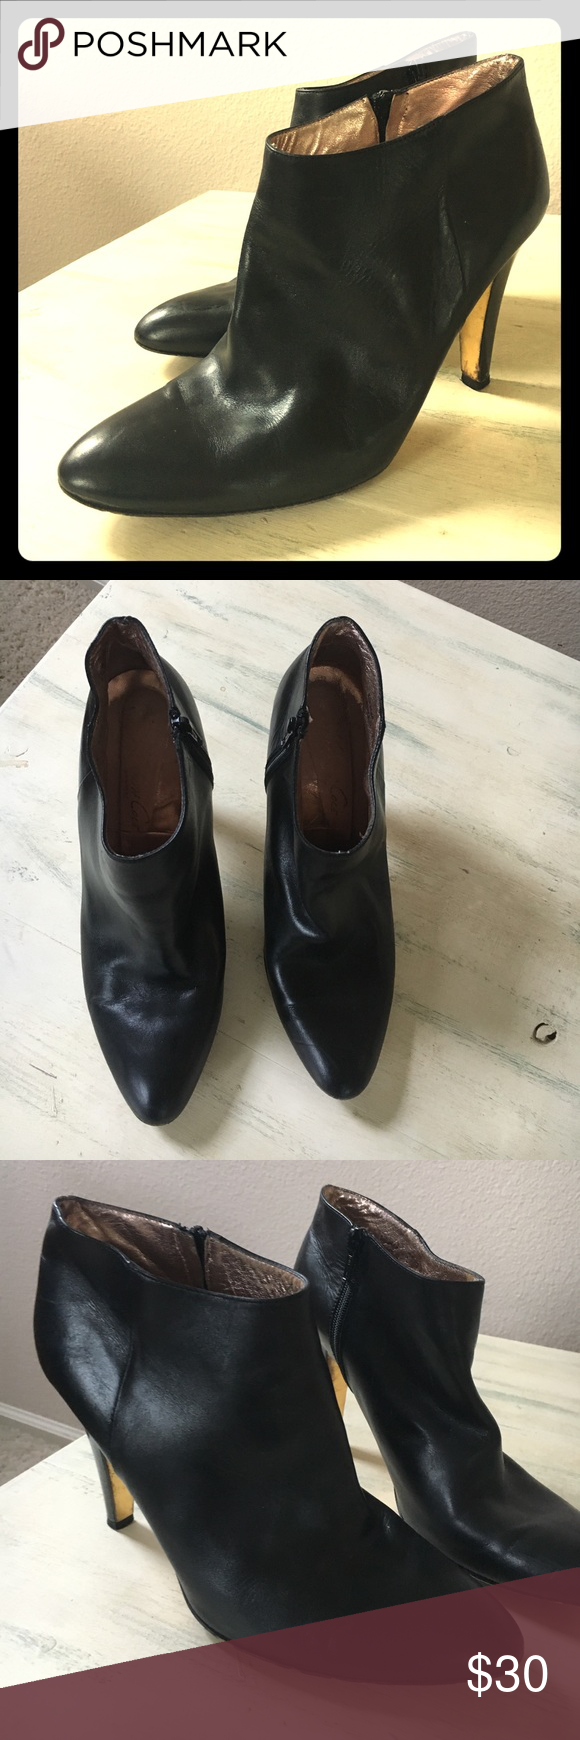 Kenneth Cole Heeled Black Leather Booties Slightly worn heeled booties with rose gold on the inside and and a gold inner heel. Made in Italy the Barbara Boxer Style. Kenneth Cole Shoes Ankle Boots & Booties